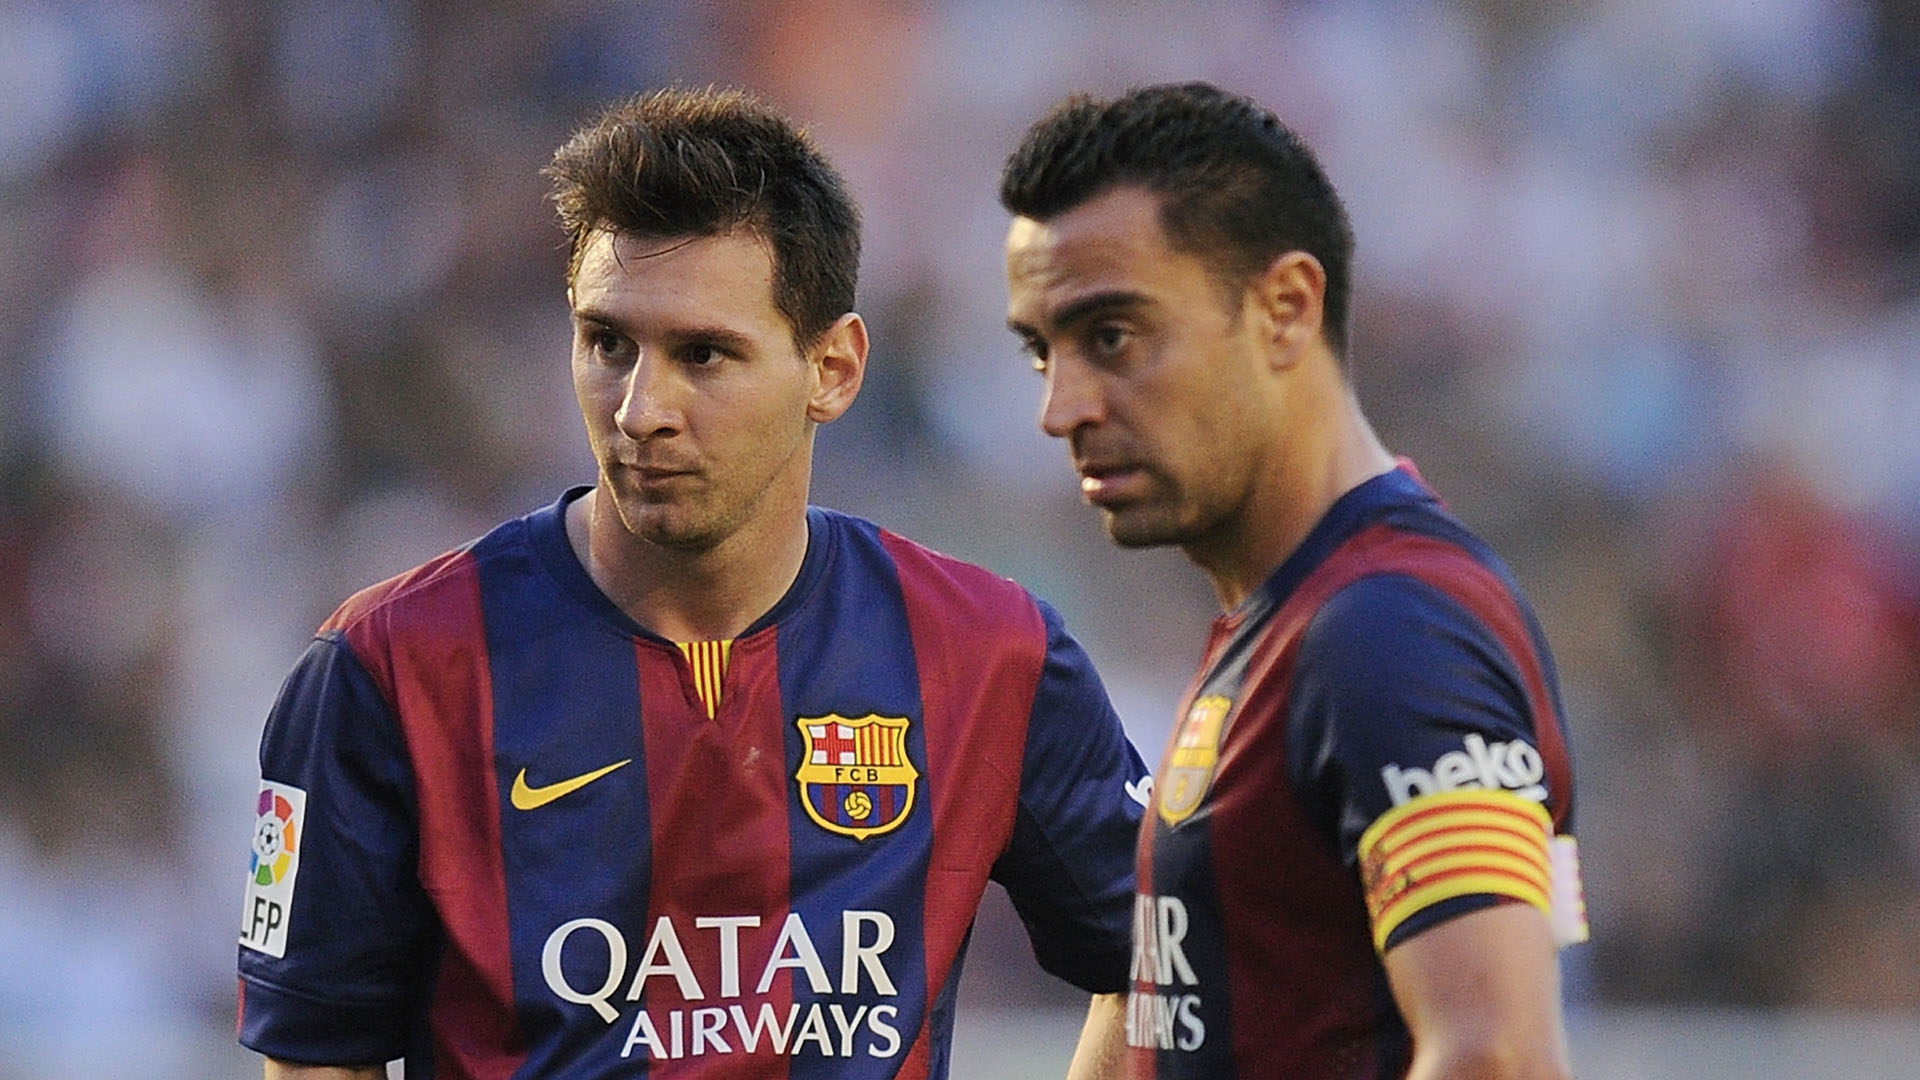 Paris Saint-Germain vs. Barcelona odds and pick - Spanish side overvalued on road?